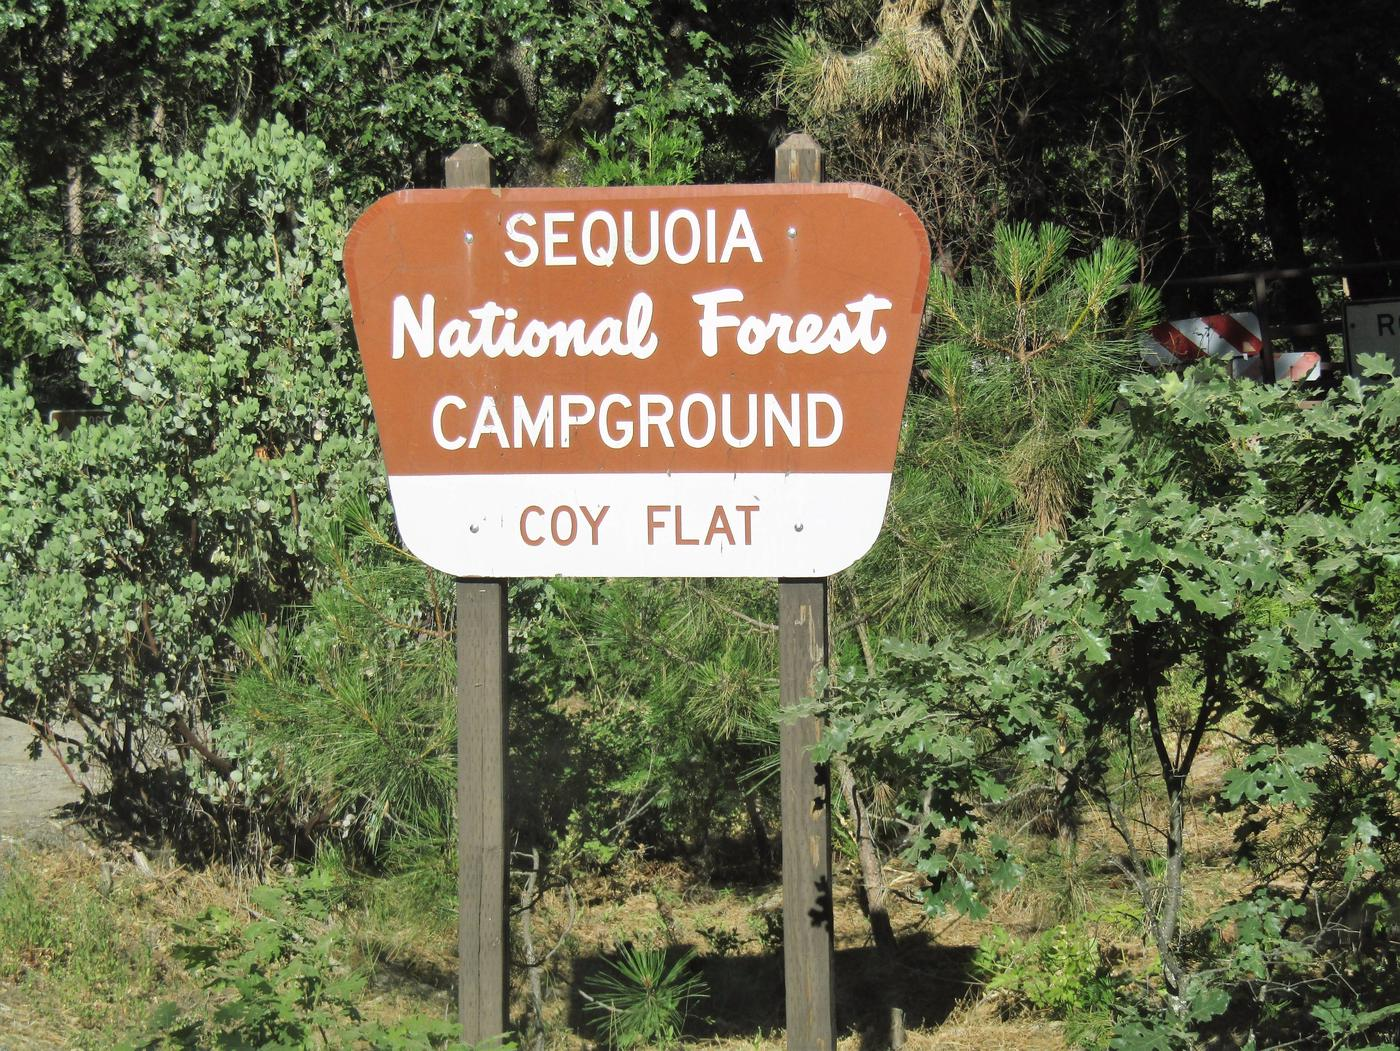 Coy Flat CampgroundCampground Entrance Sign